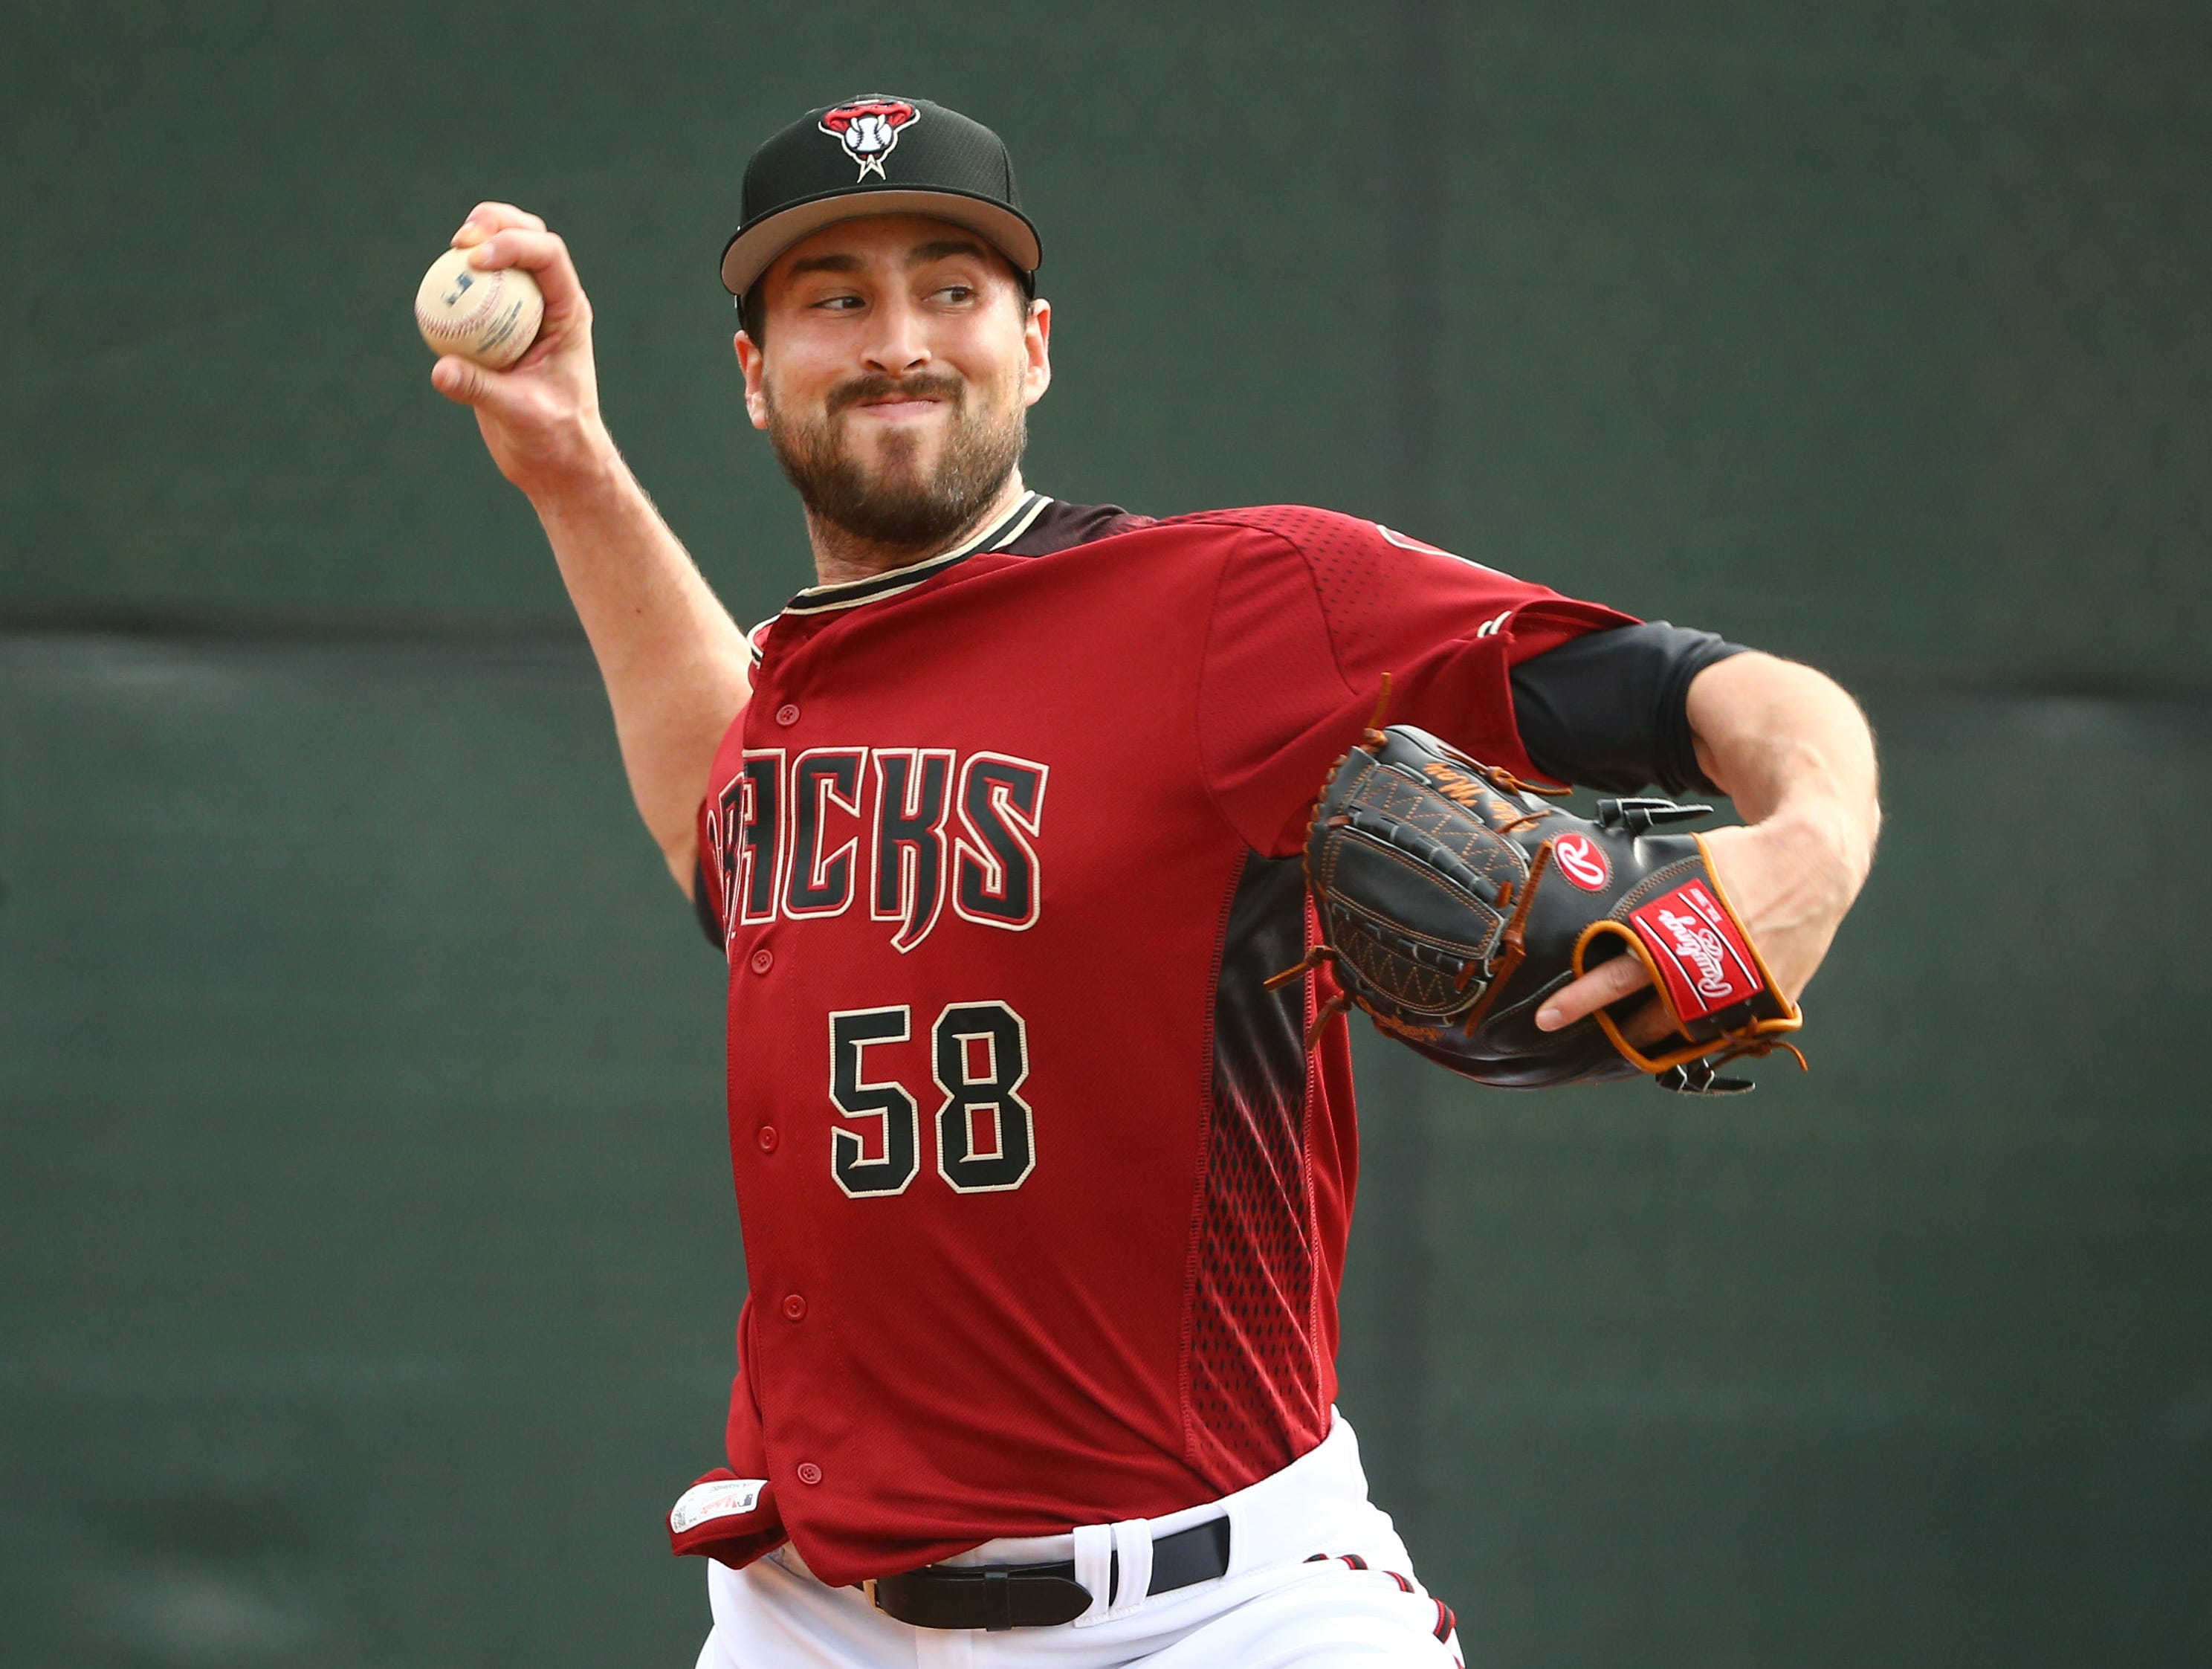 Arizona Diamondbacks pitcher Stefan Crichton during the first day of spring training workouts on Feb. 13 at Salt River Fields in Scottsdale.